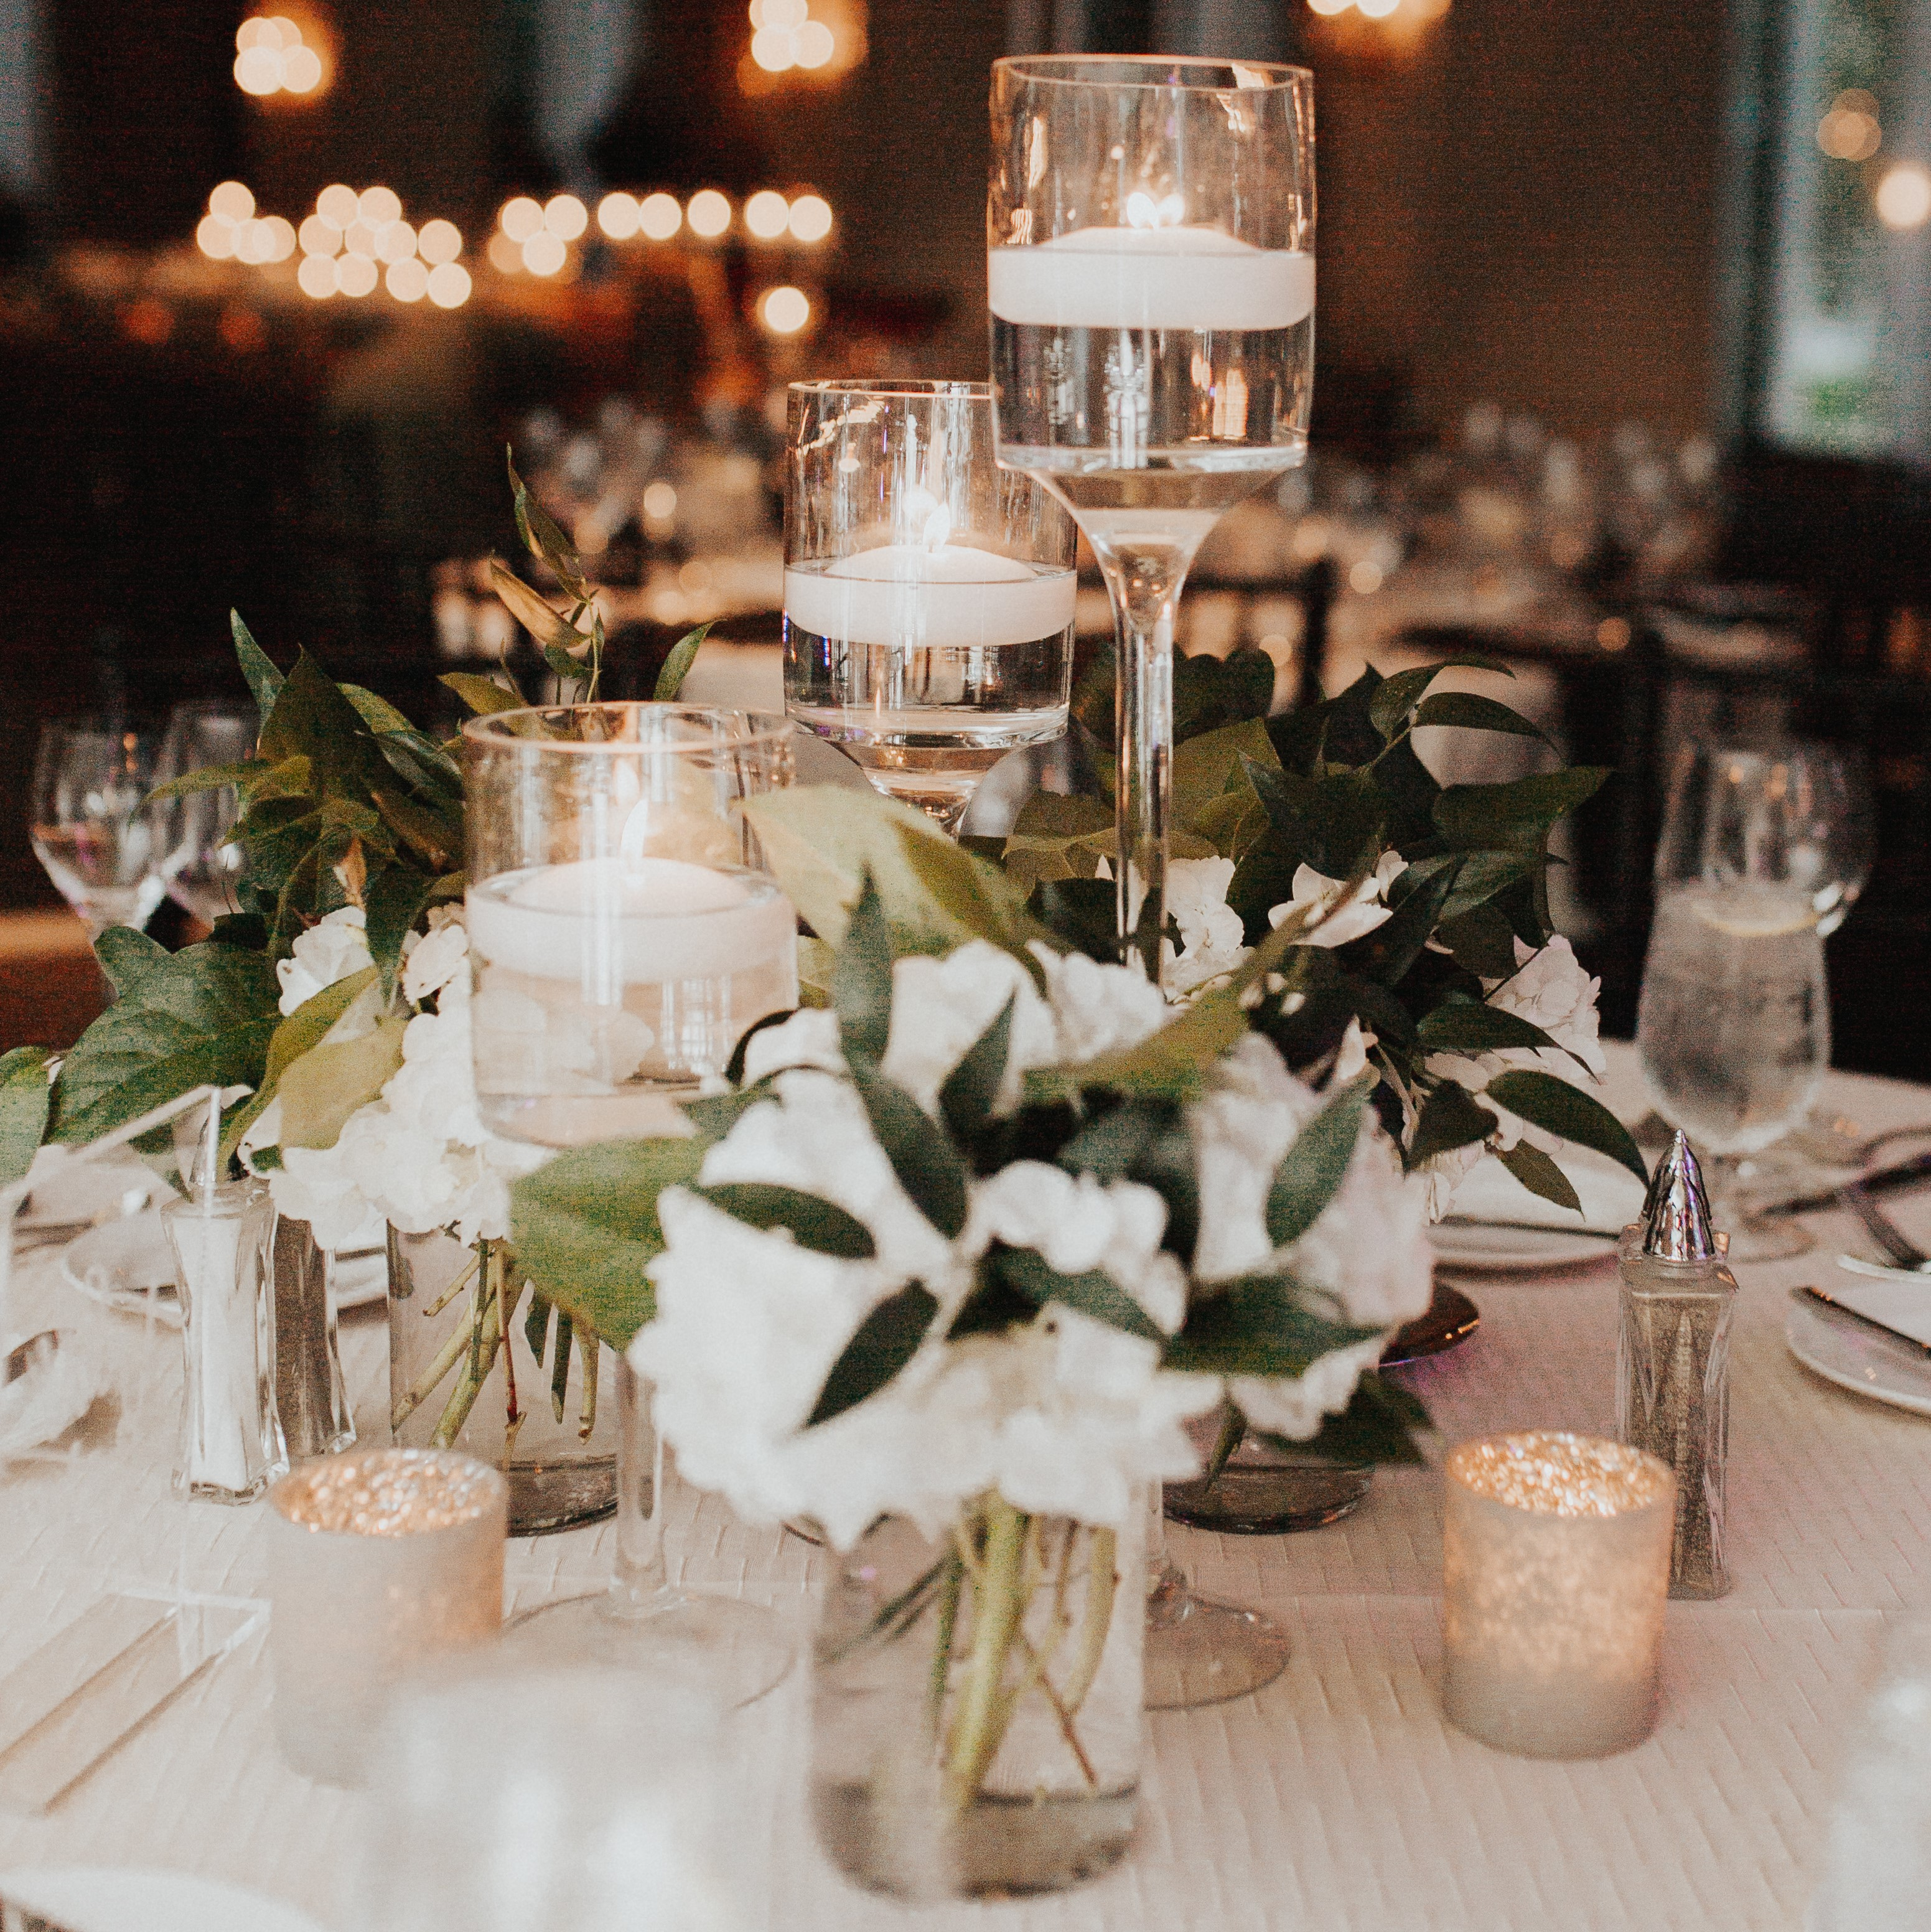 The wedding centerpiece with ivory floral and touches of greenery.